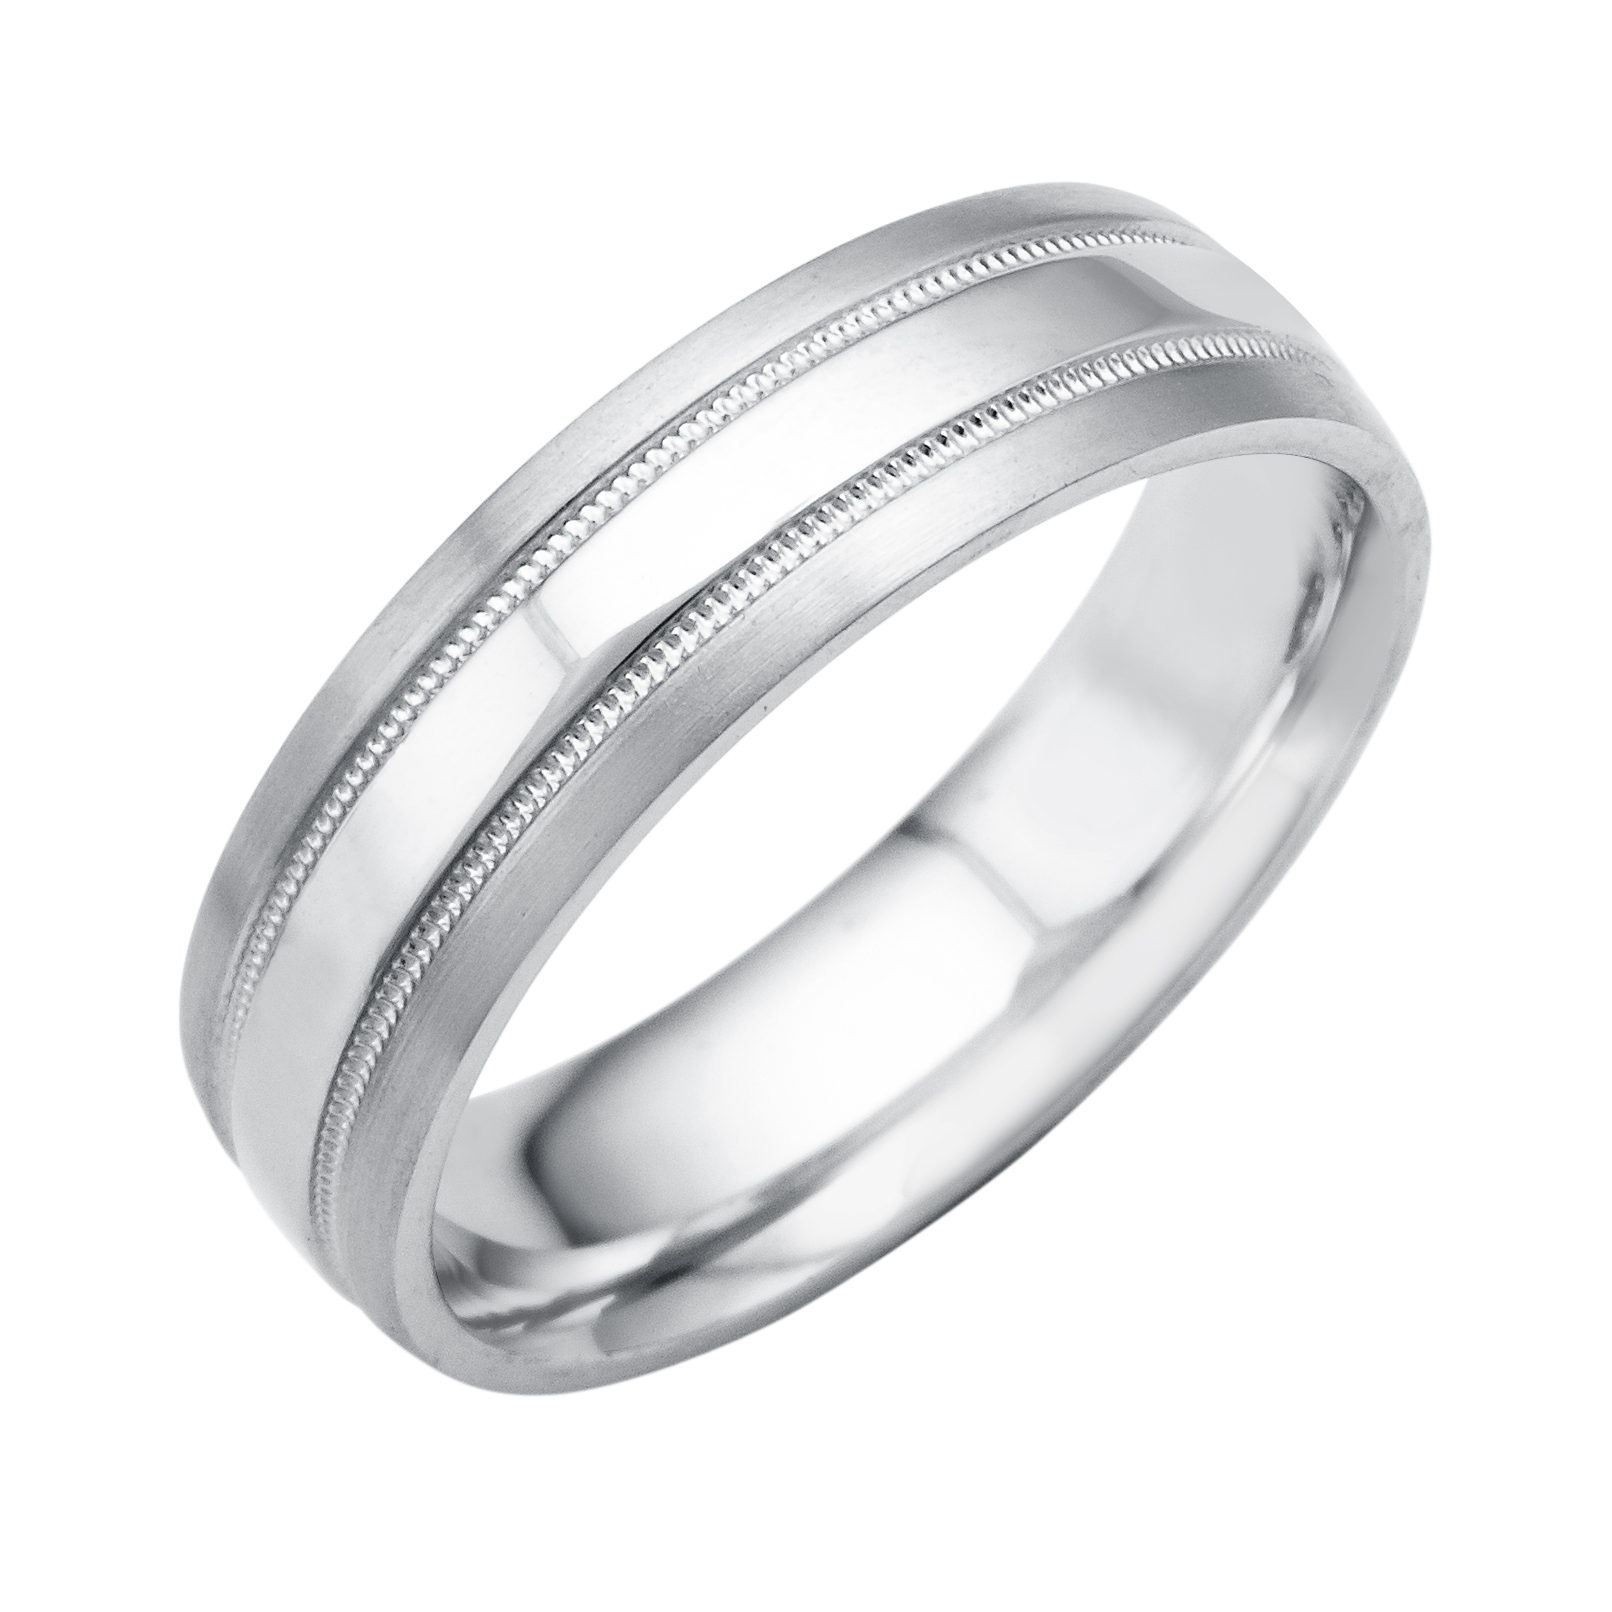 mens band wedding platinum milgrain bands fit anniversary nl in wg jewelry ring comfort anniversay